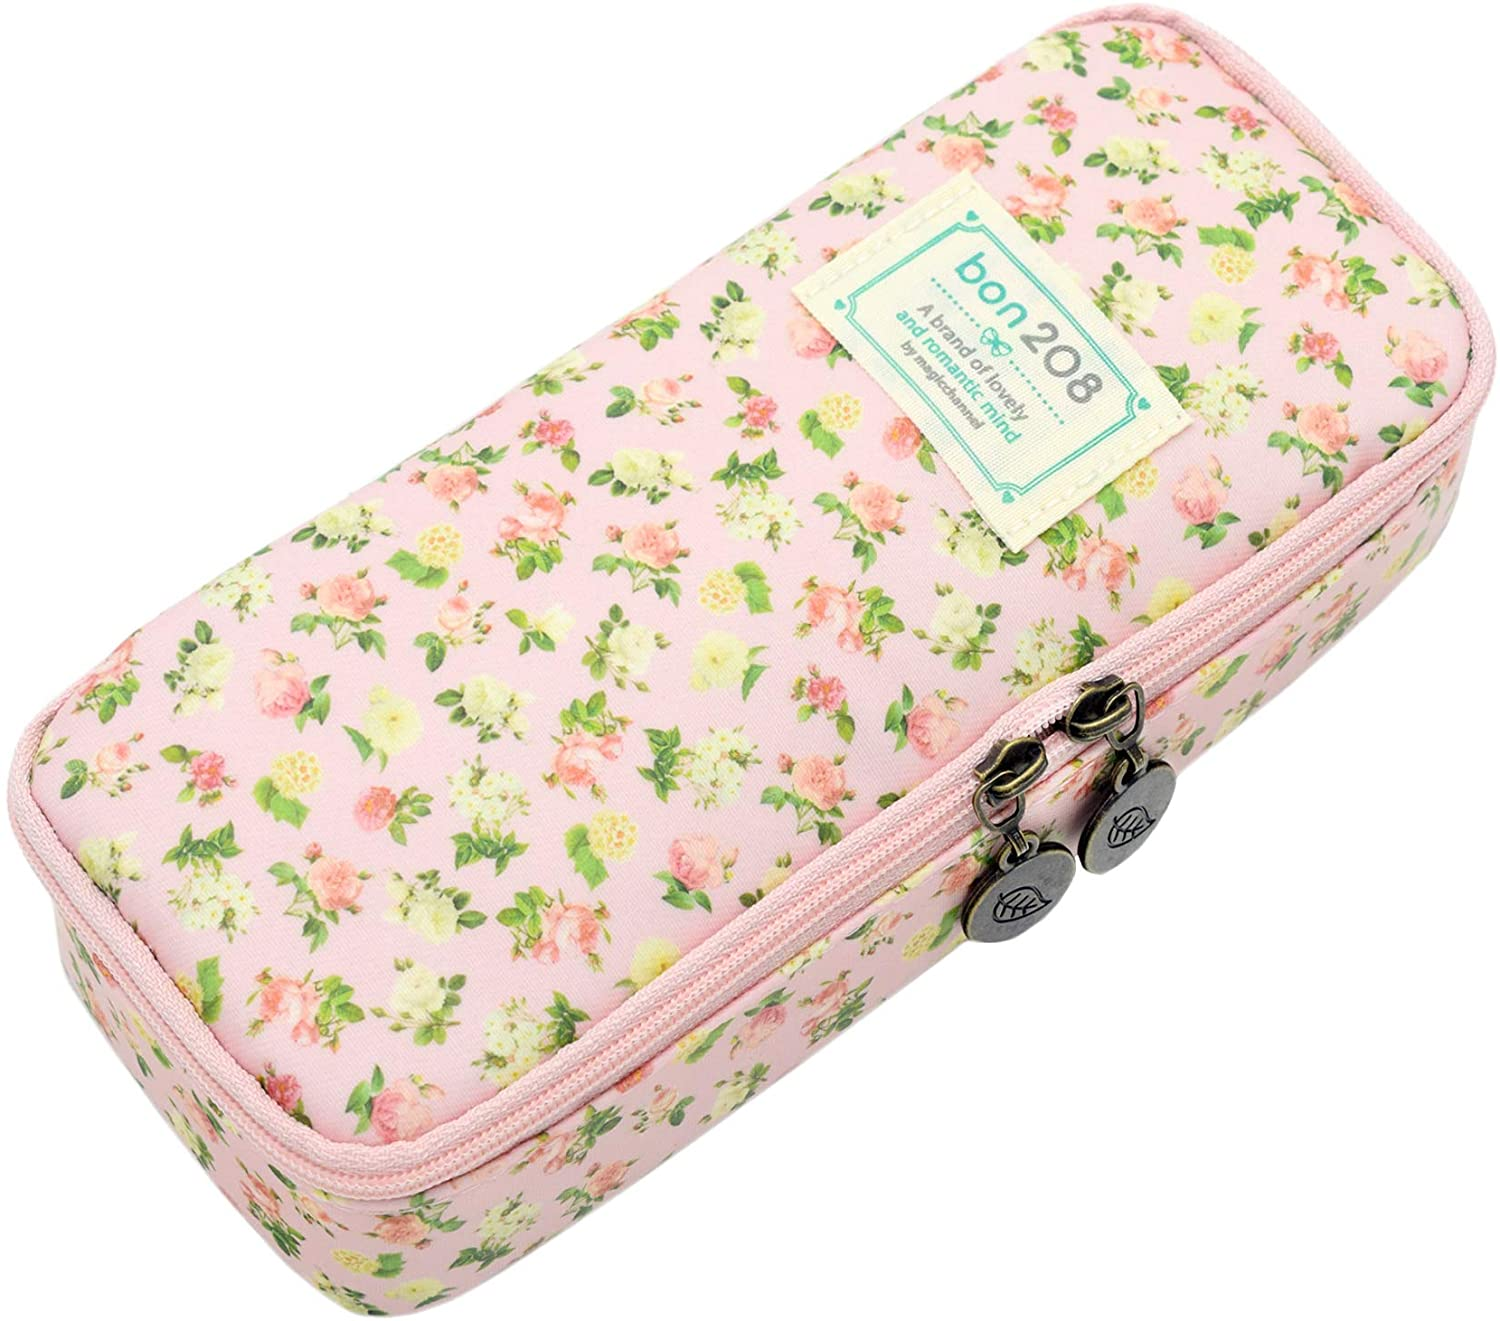 Twinkle Club Cute Floral Pencil Pen Case Bag Pouch Holder for Middle High School College Office Girl Storage Pink